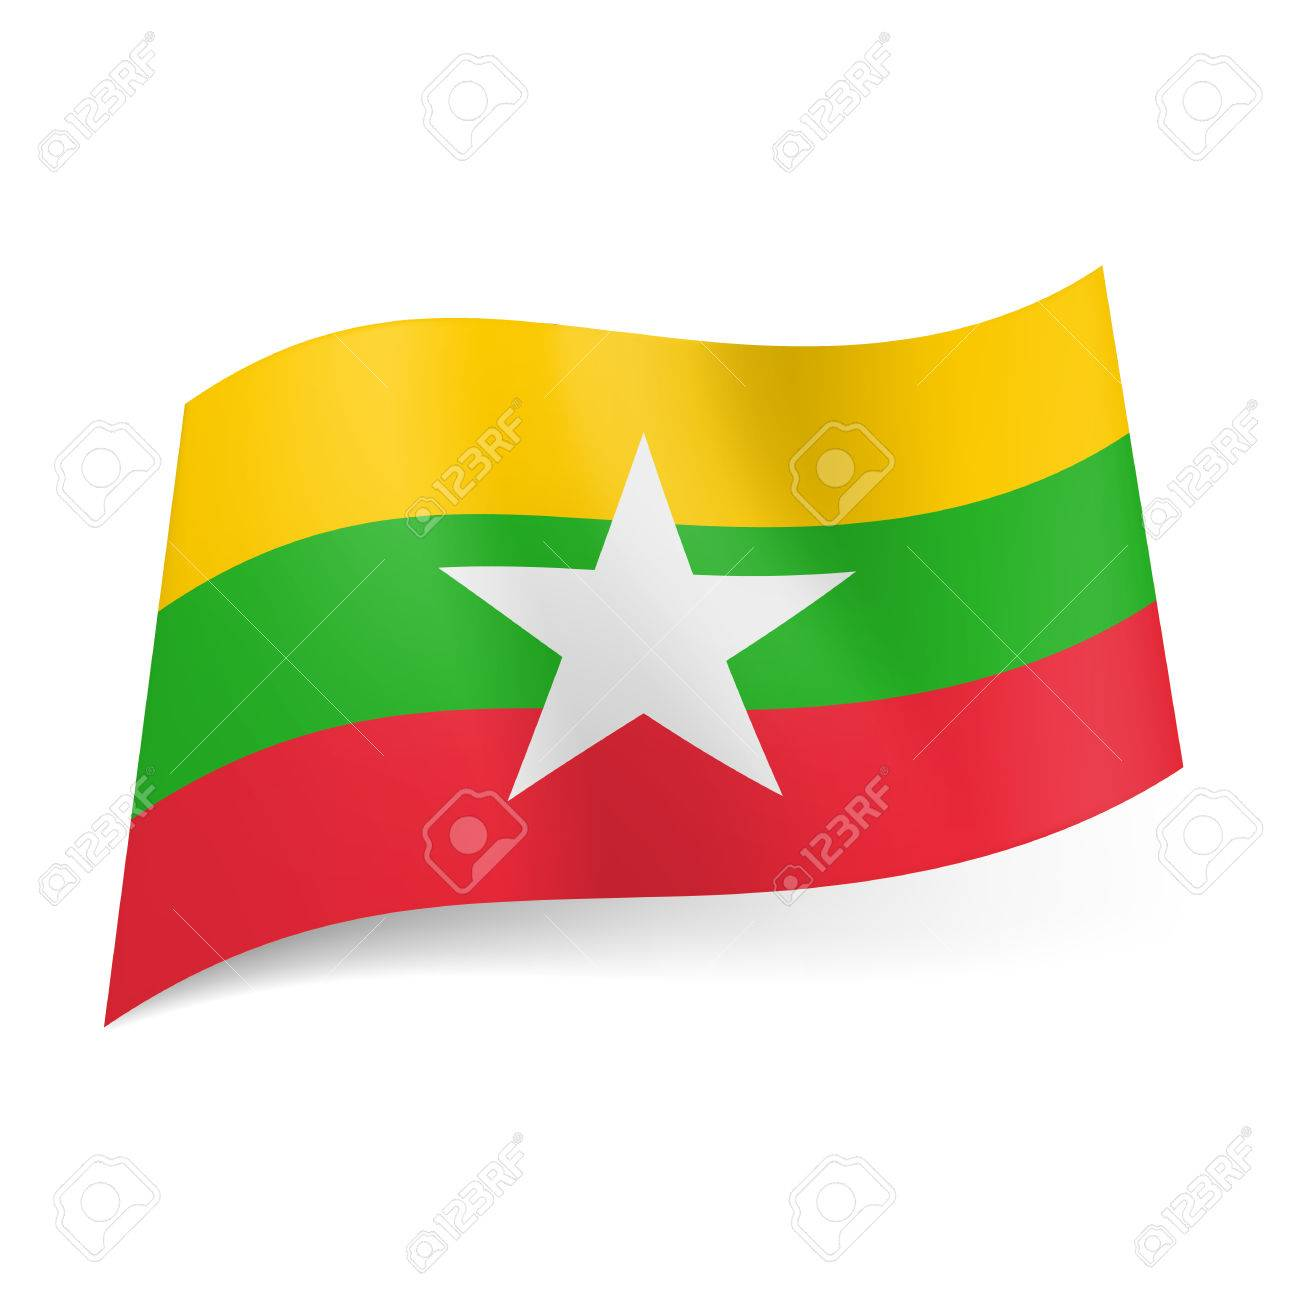 National Flag Of Republic Of The Union Of Myanmar Yellow Green